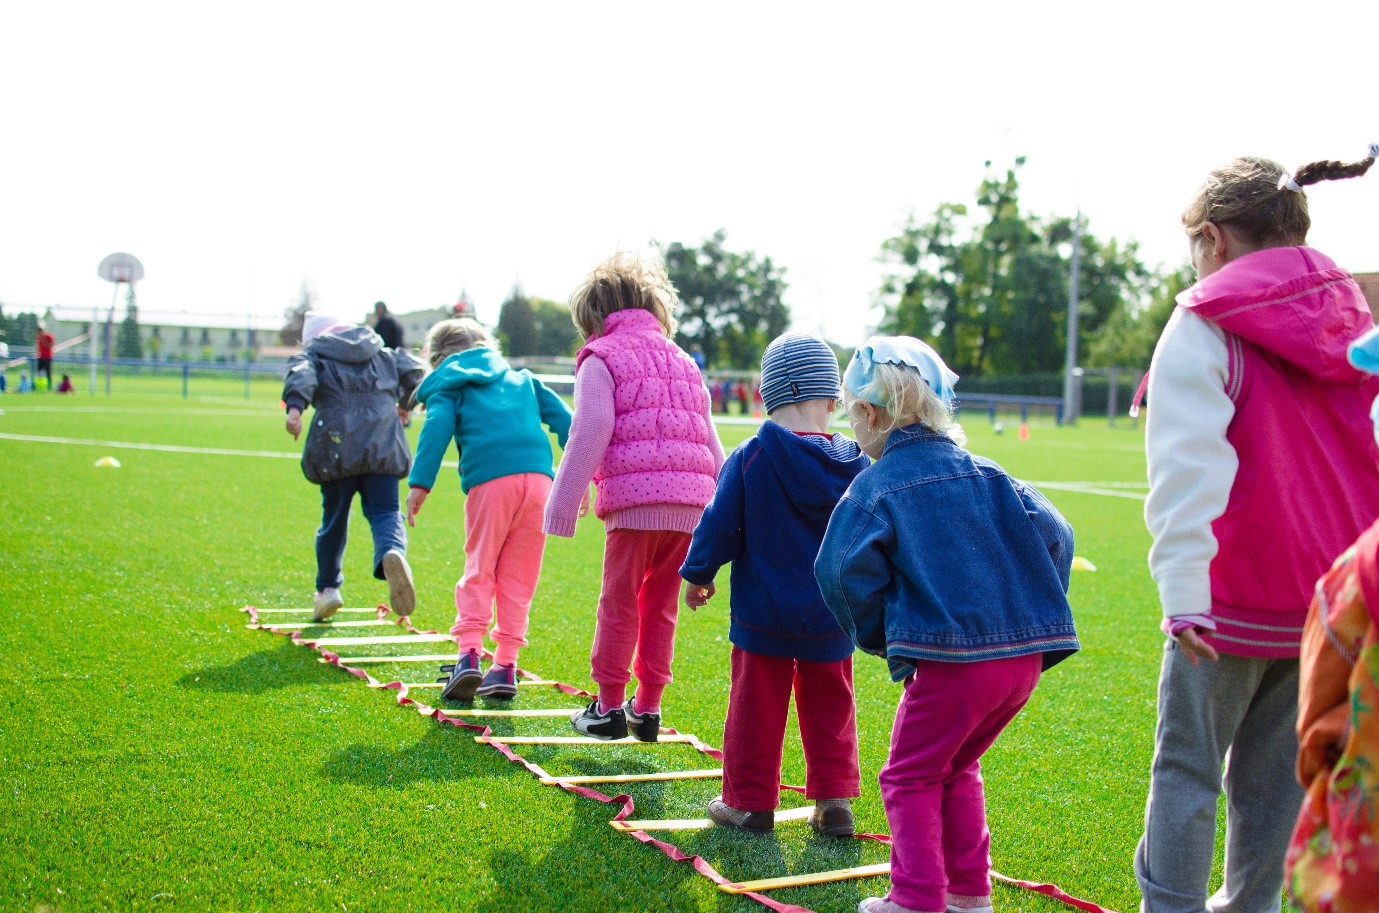 children's outdoor activities for world kindness day